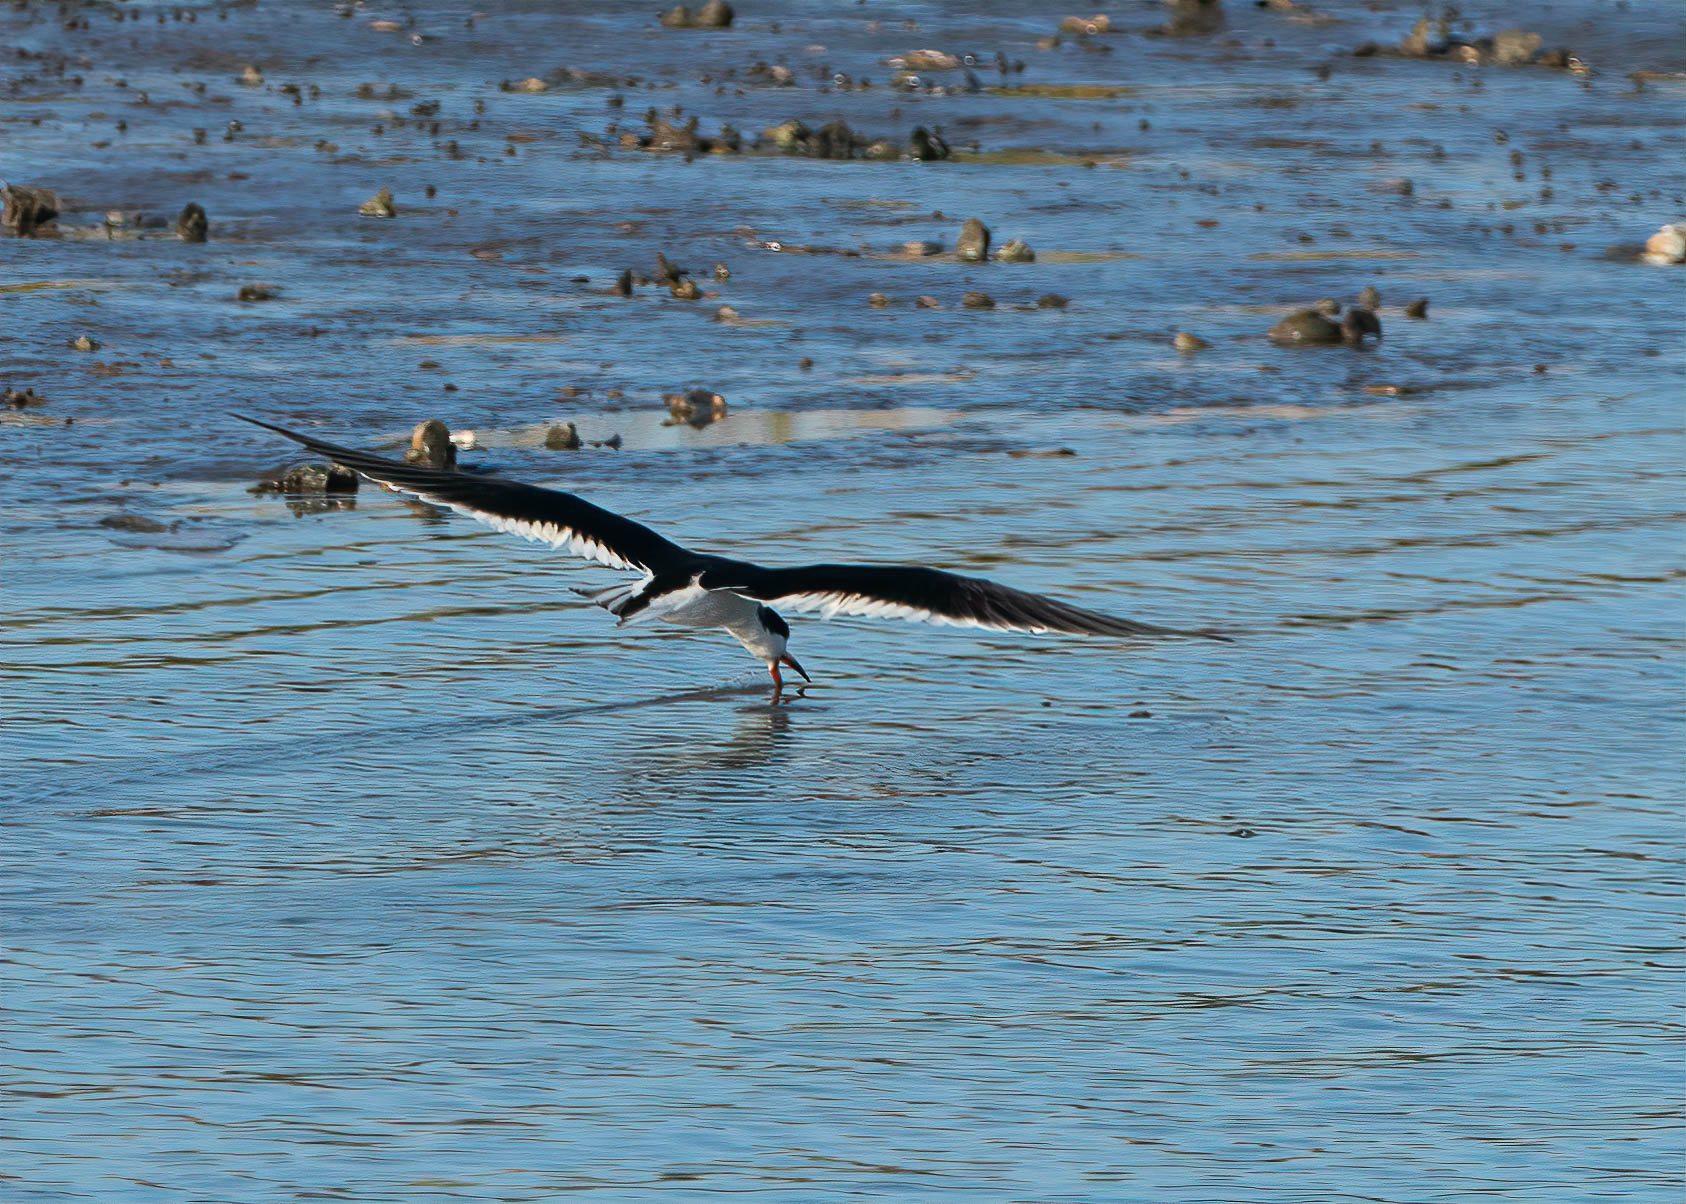 Black Skimmer skimming.